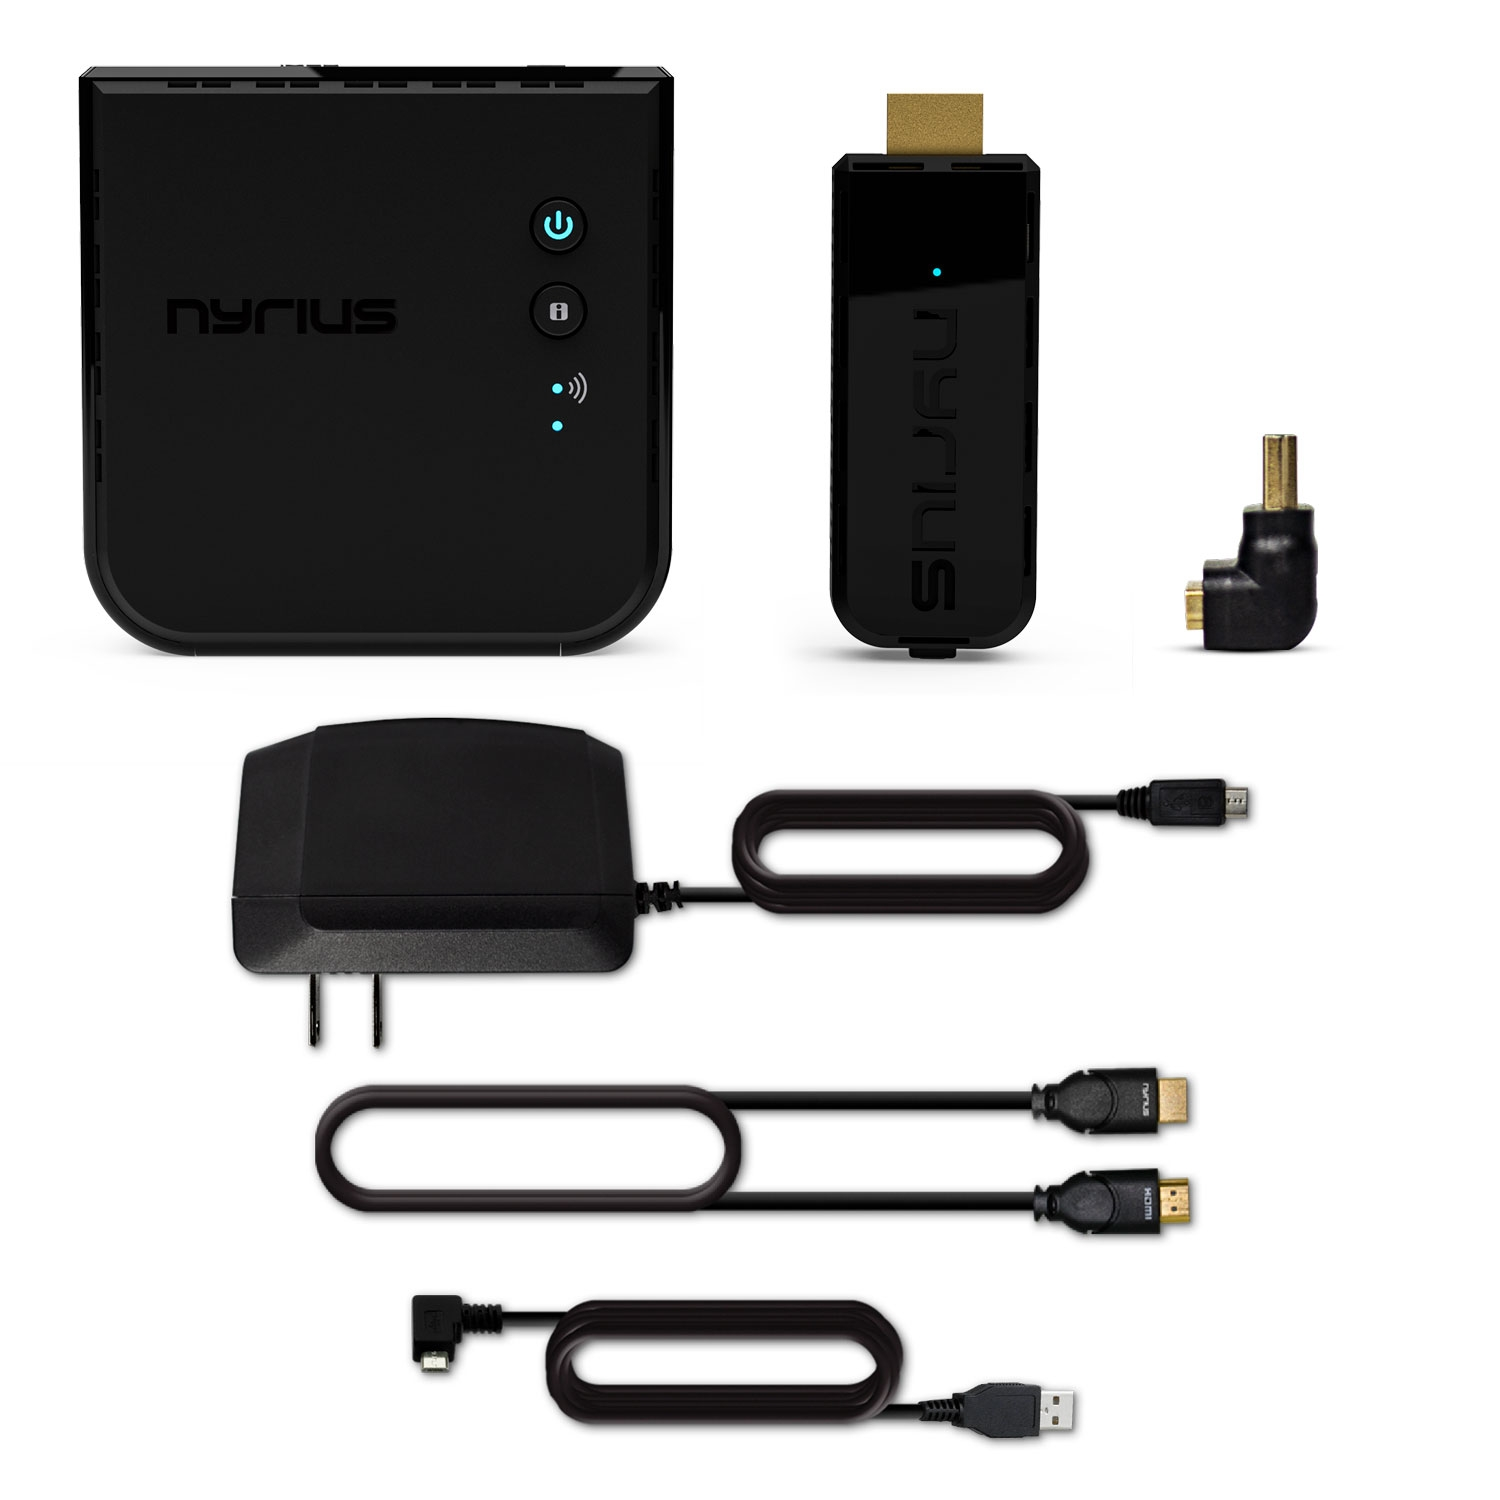 ARIES Prime Wireless HD Video Transmitter & Receiver System